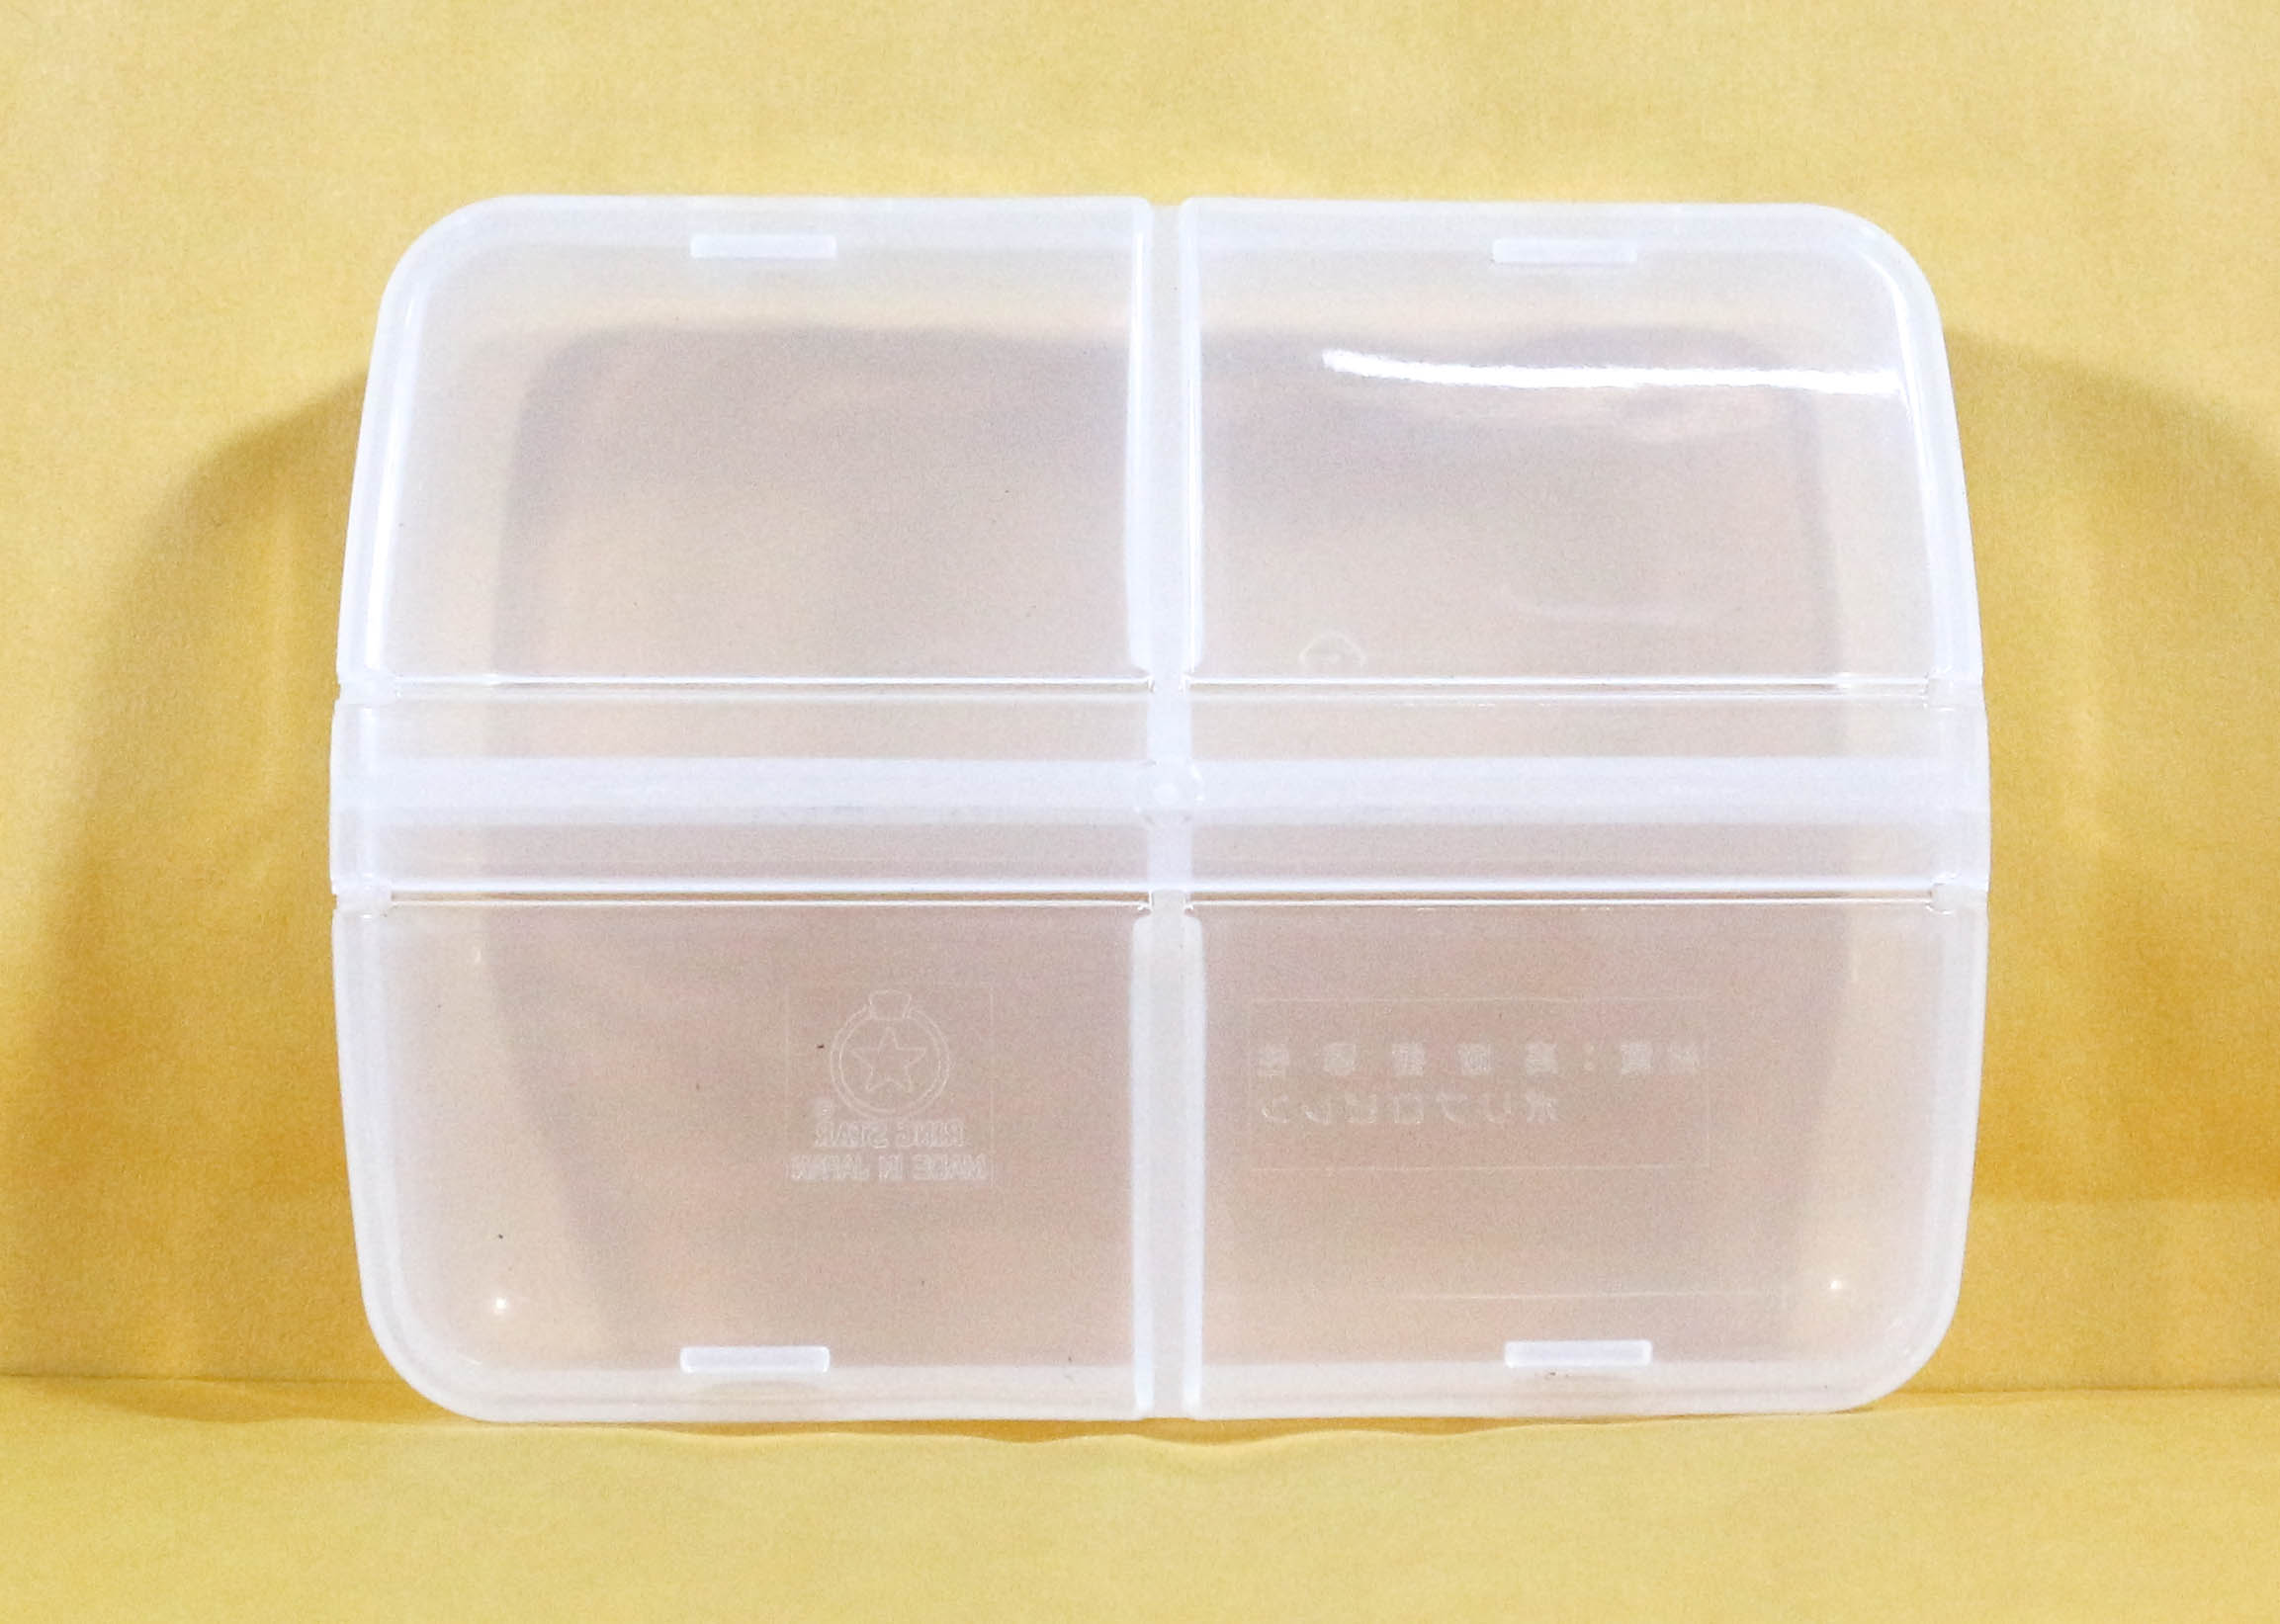 Ring Star PT-94 My Petite Tackle Box 90 x 67 x 23 mm Clear (5370)